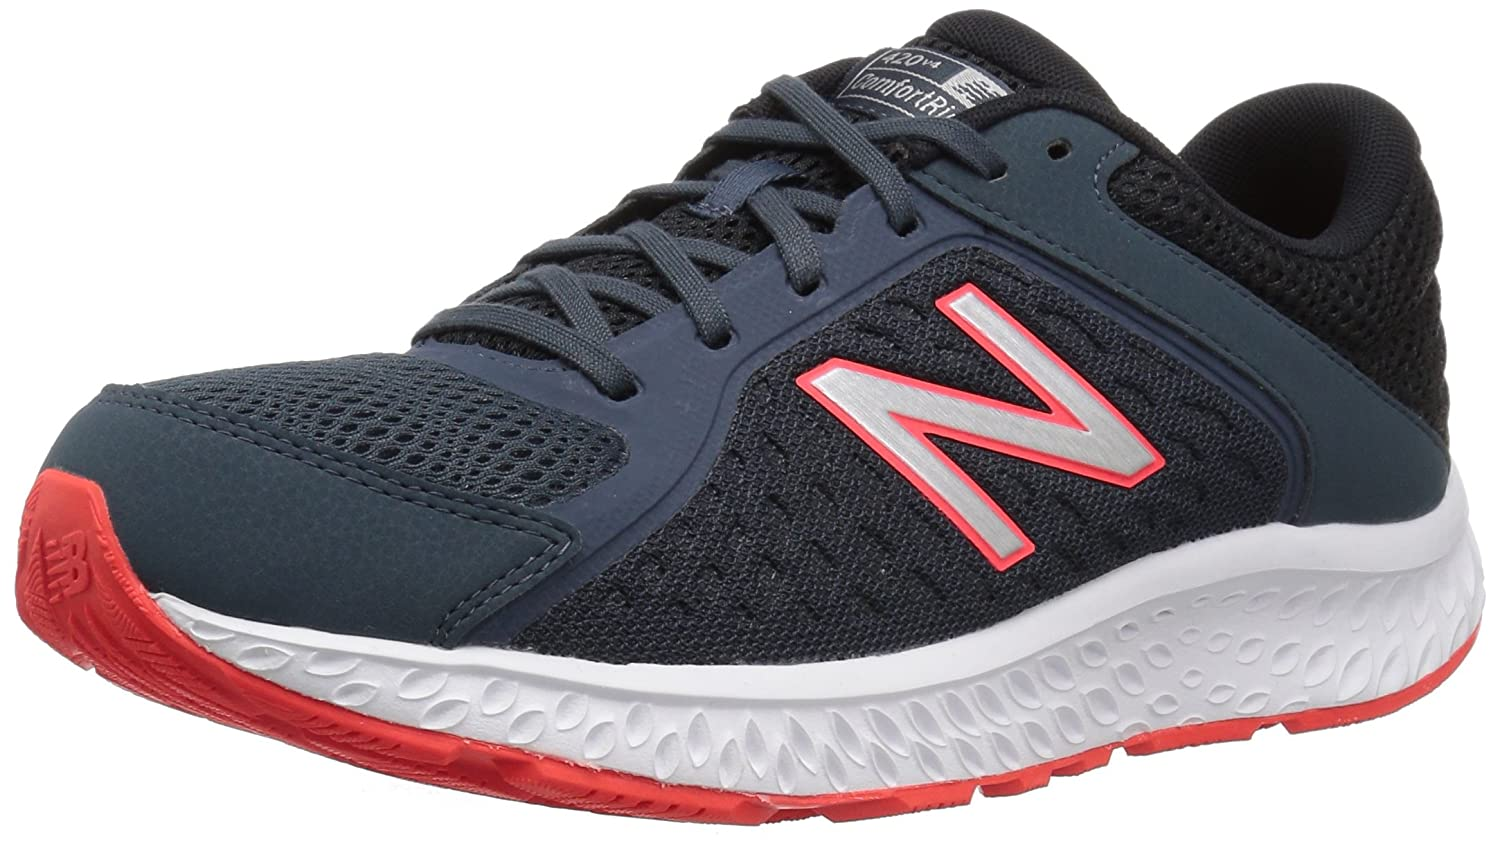 New Balance Men's 420v4 Cushioning Running Shoe B077S345W8 10 2E US|Petrol